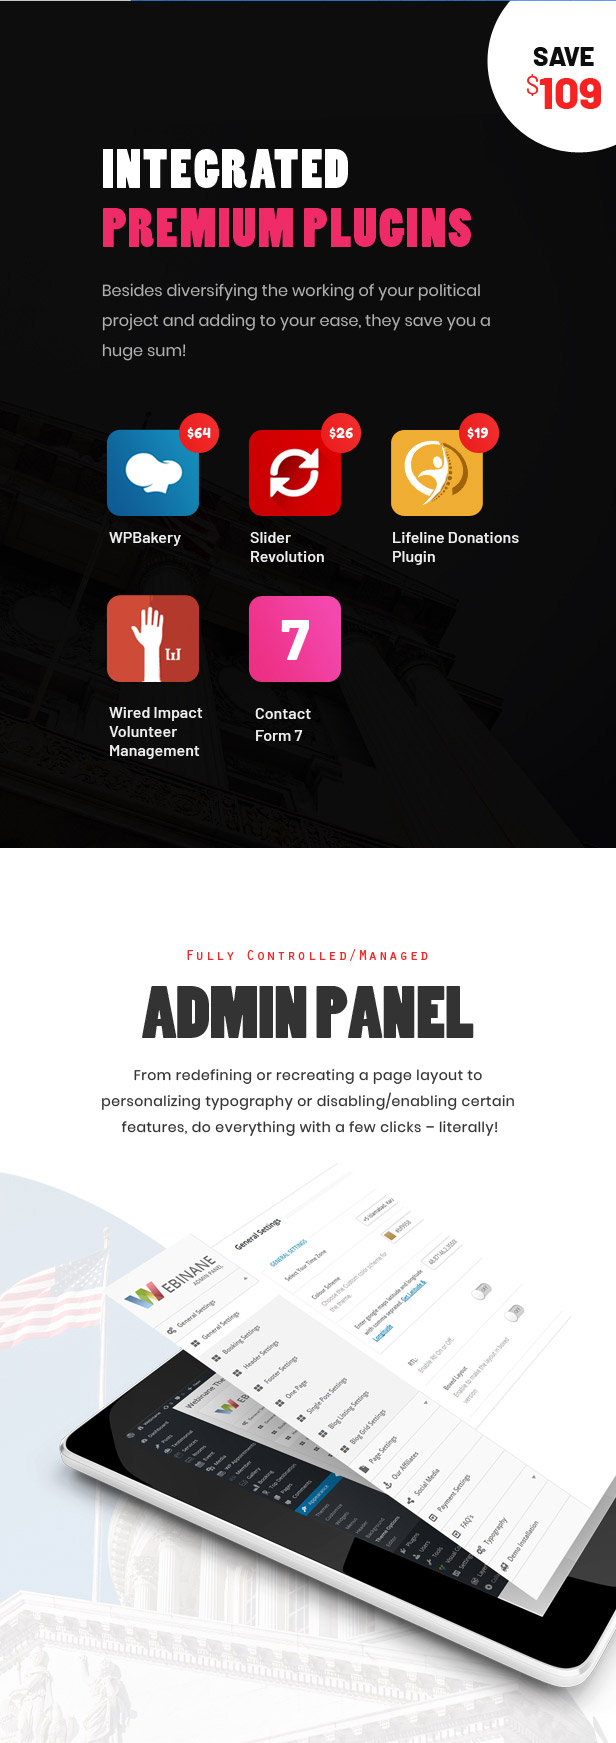 Actavista - A Responsive Political WordPress Theme For Politicians and Political Organizations - 5